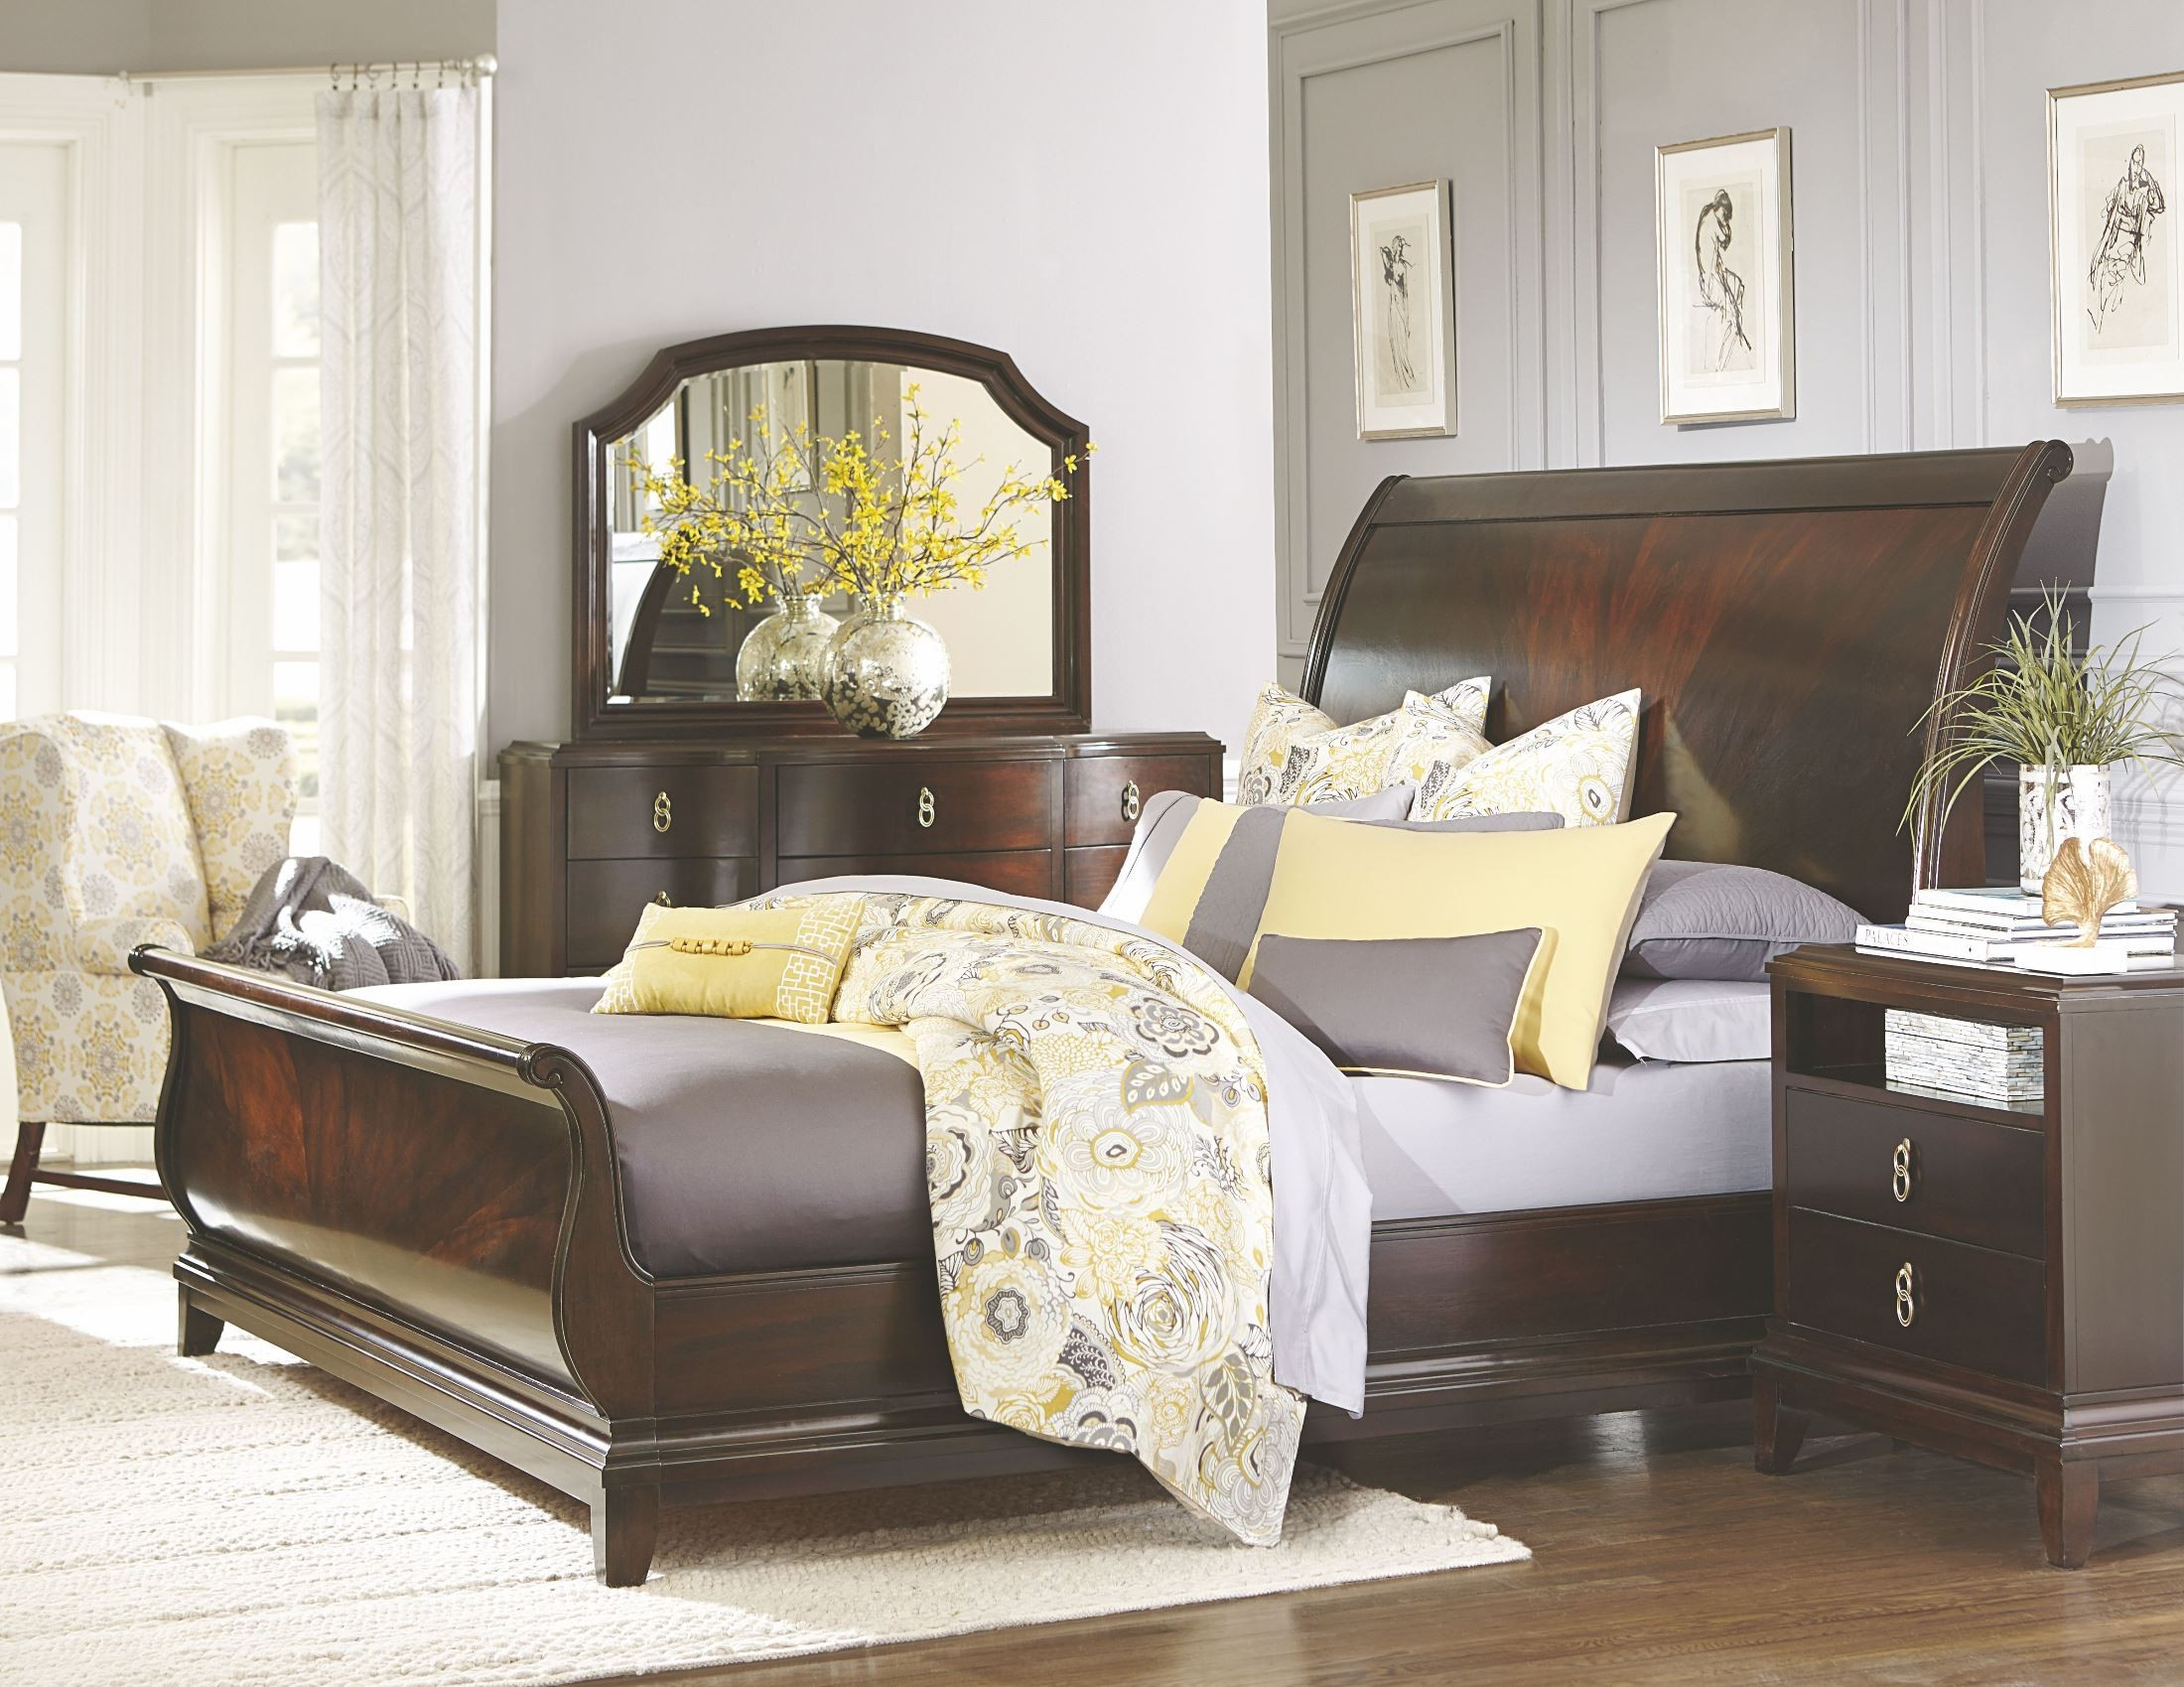 Sophia Sleigh Bedroom Set From Legacy Classic 4450 4305k